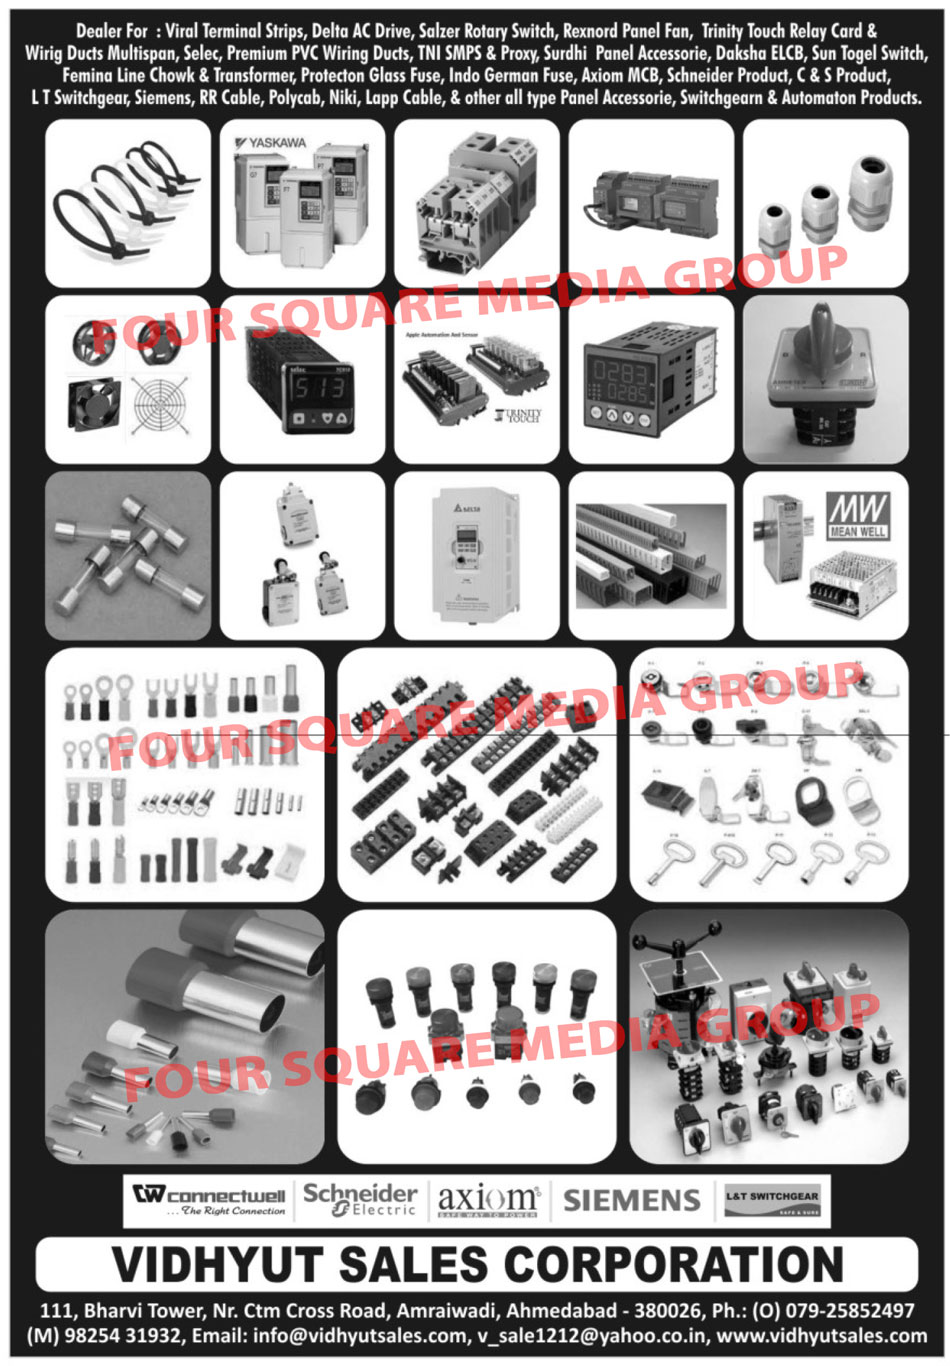 Terminal Strips, AC Drives, Rotary Switches, Panel Fans, Touch Relay Card, Wiring Duct Multispan, PVC Wiring Ducts, Panel Accessories, ELCB, Togel Switches, Line Chowk, Transformers, Glass Fuse, Fuse, MCB, Switchgear, Cable, Panel Accessories, Automation Products